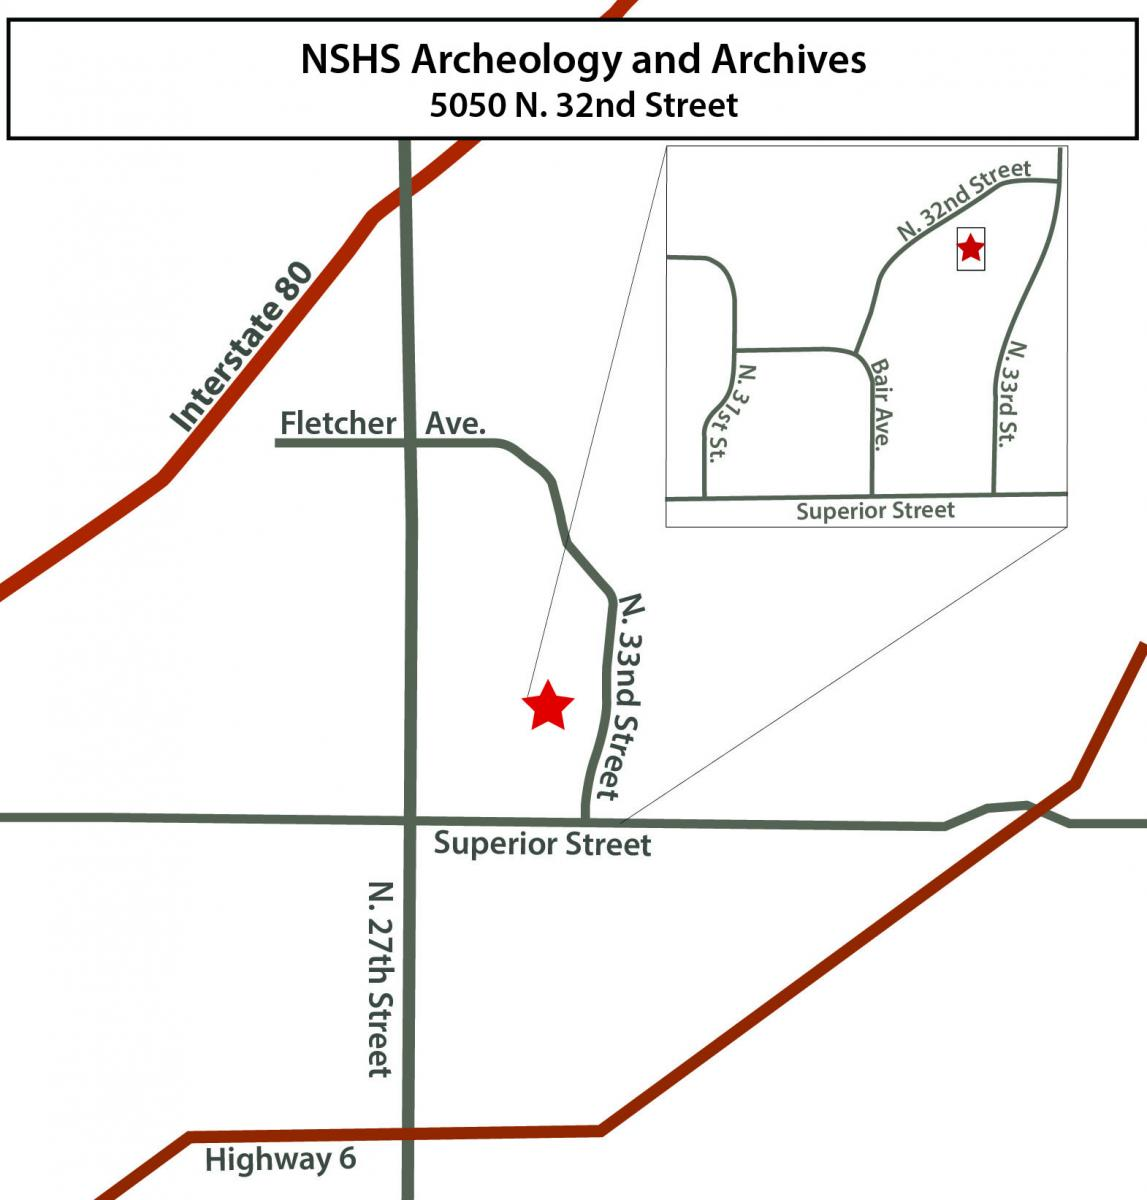 Map - 5050 N. 32nd Street, Lincoln, Nebraska